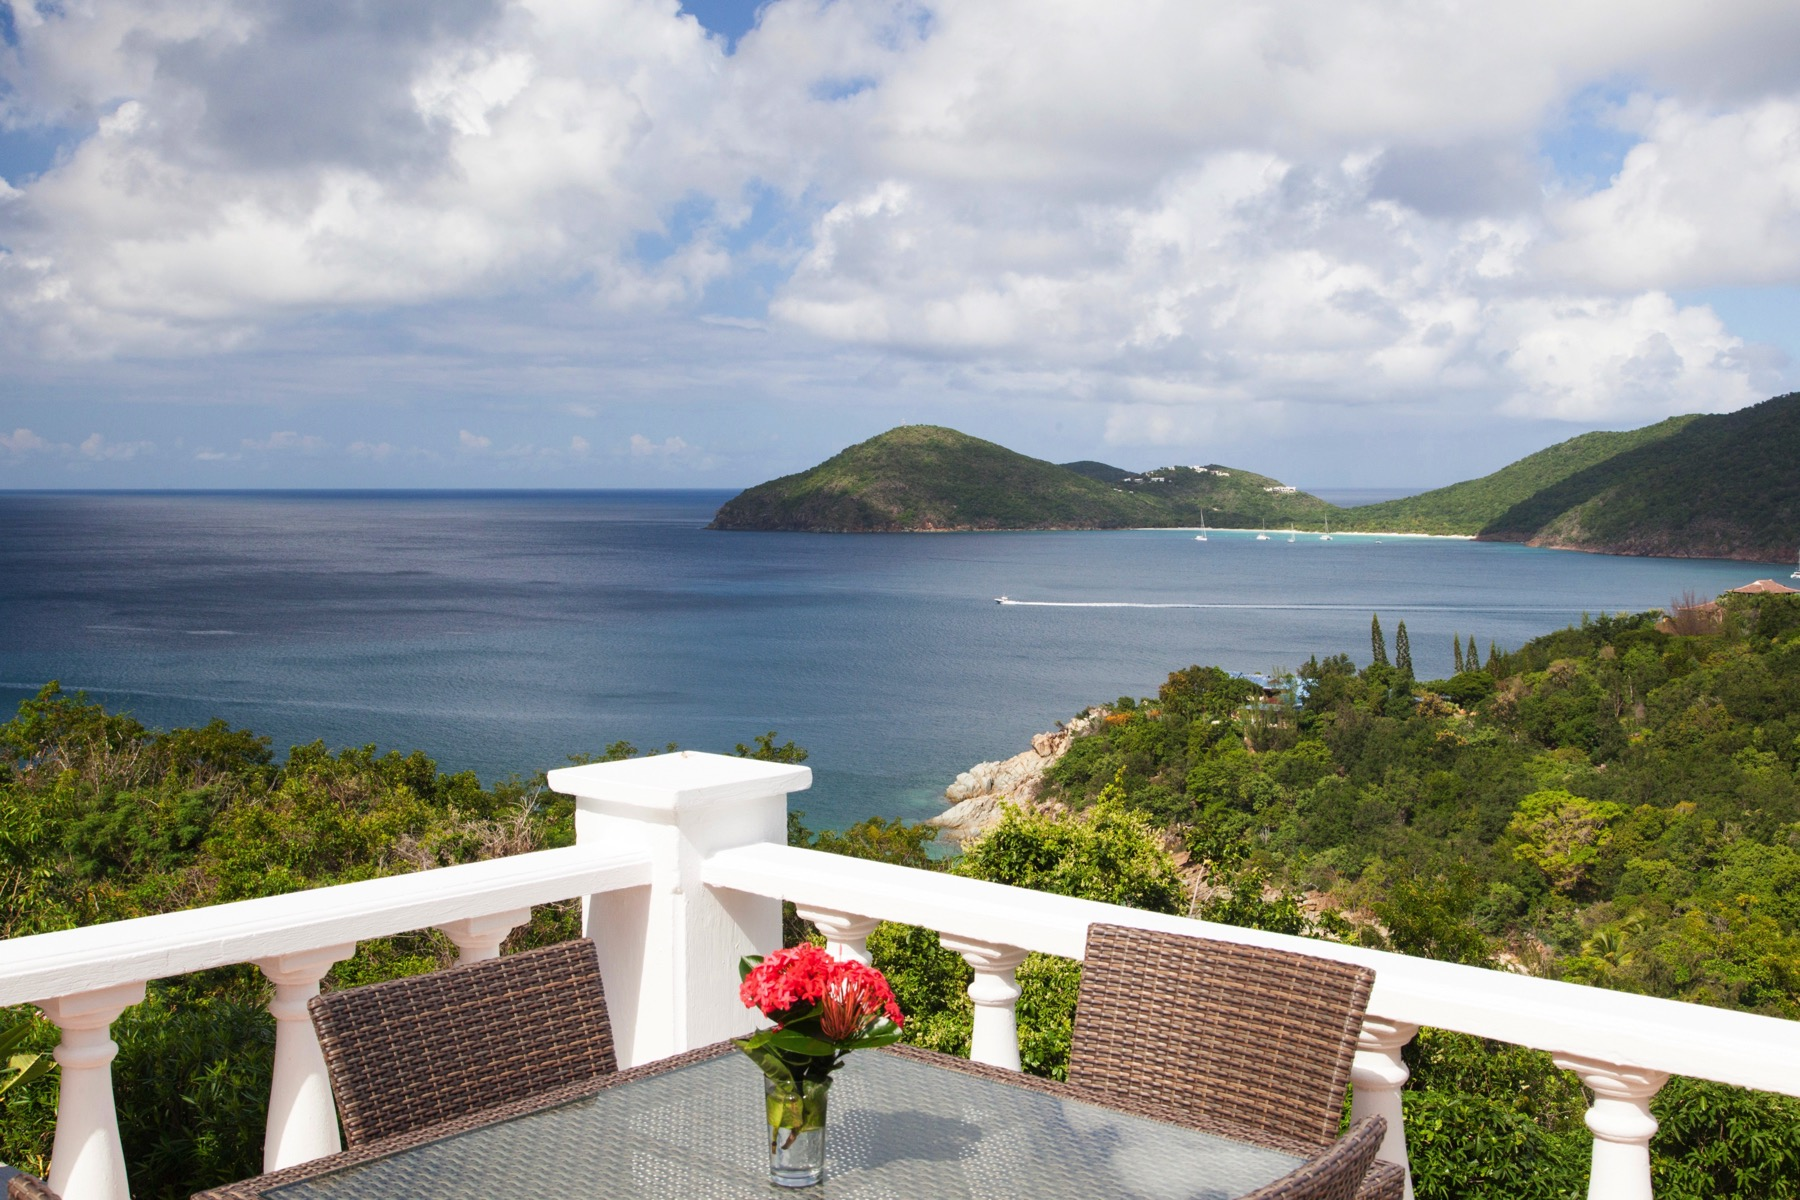 Elysium Little Bay, Tortola British Virgin Islands